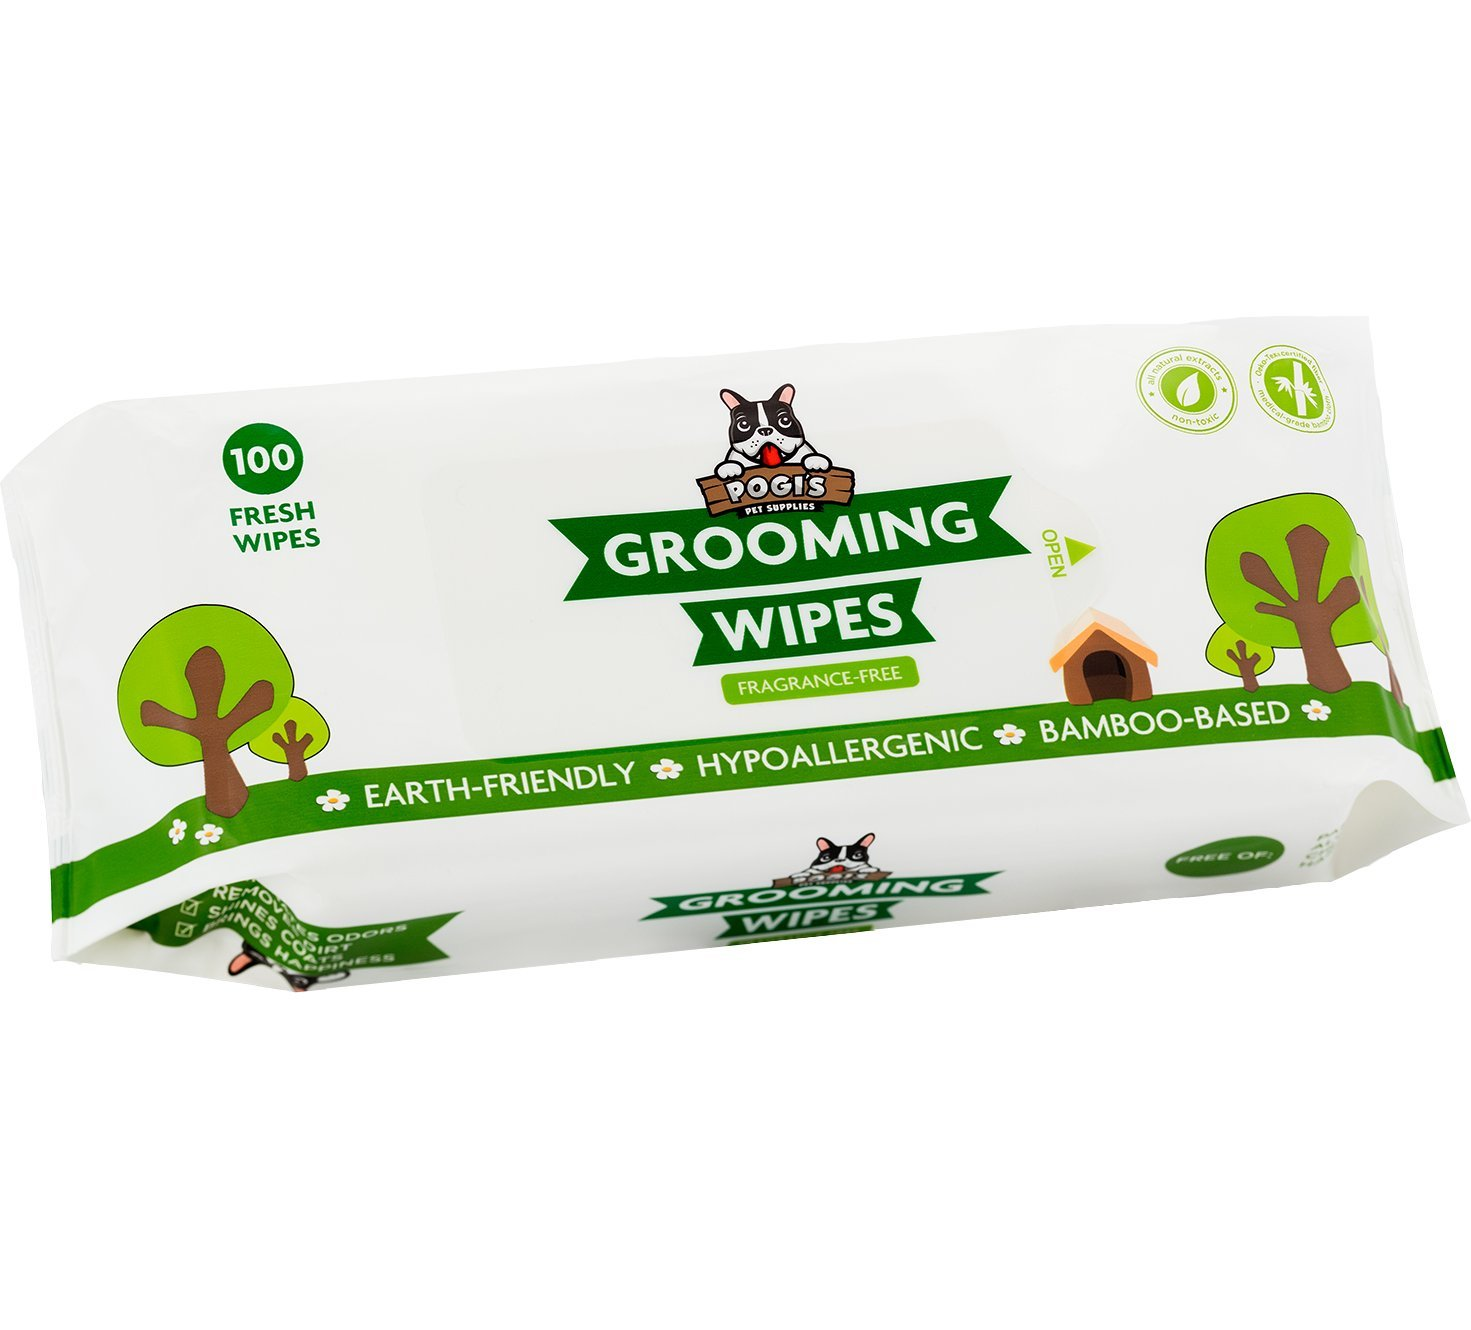 Pogis-Grooming-Wipes-Hypoallergenic-Pet-Wipes-for-Dogs-Cats-Plant-Based-Earth-Friendly-Deodorizing-Dog-Wipes